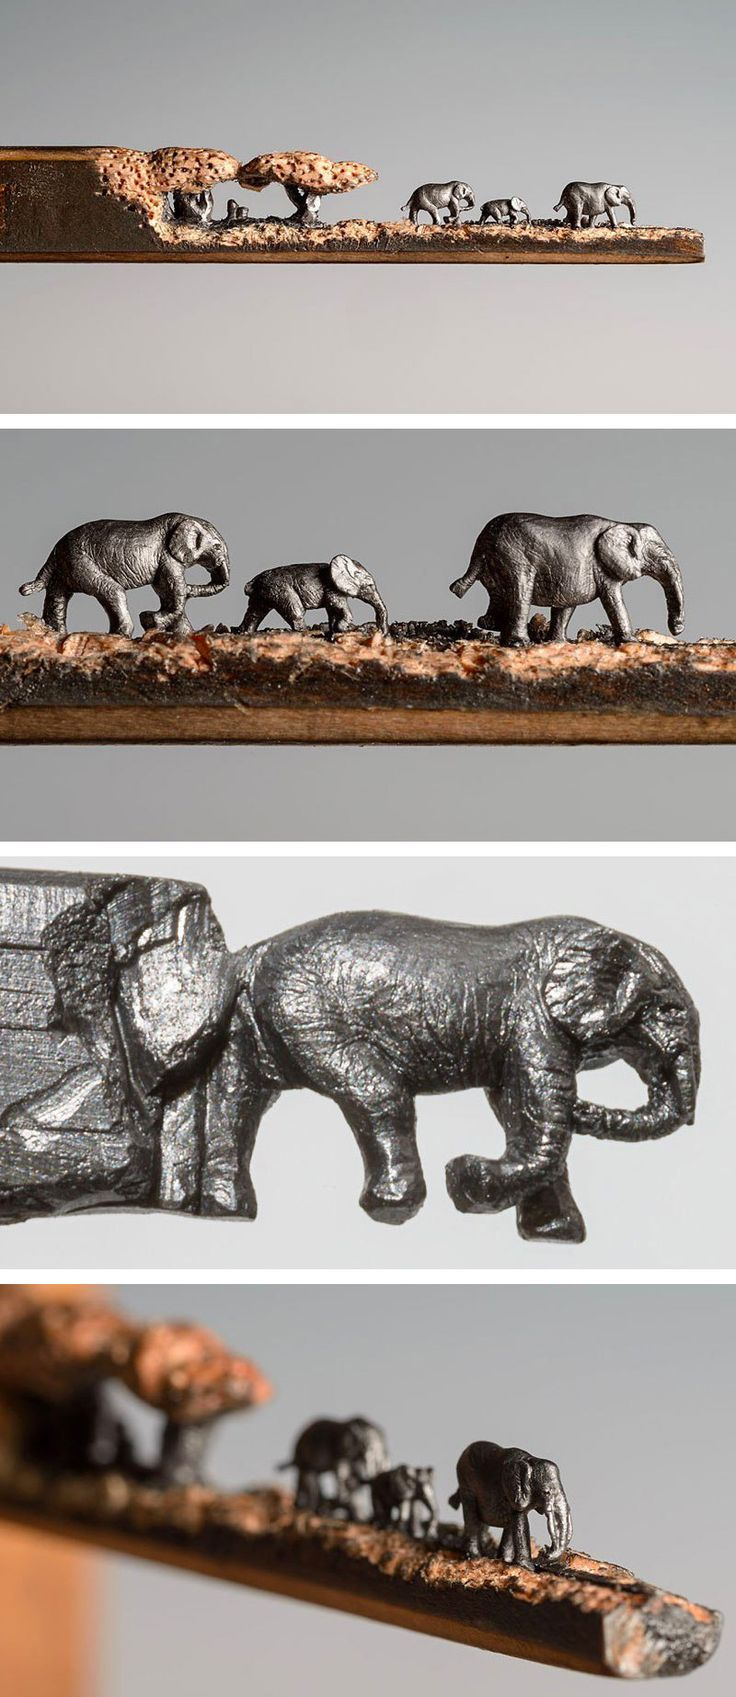 A Miniature Landscape of Elephants Carved From the Tip of a Pencil by Cindy…